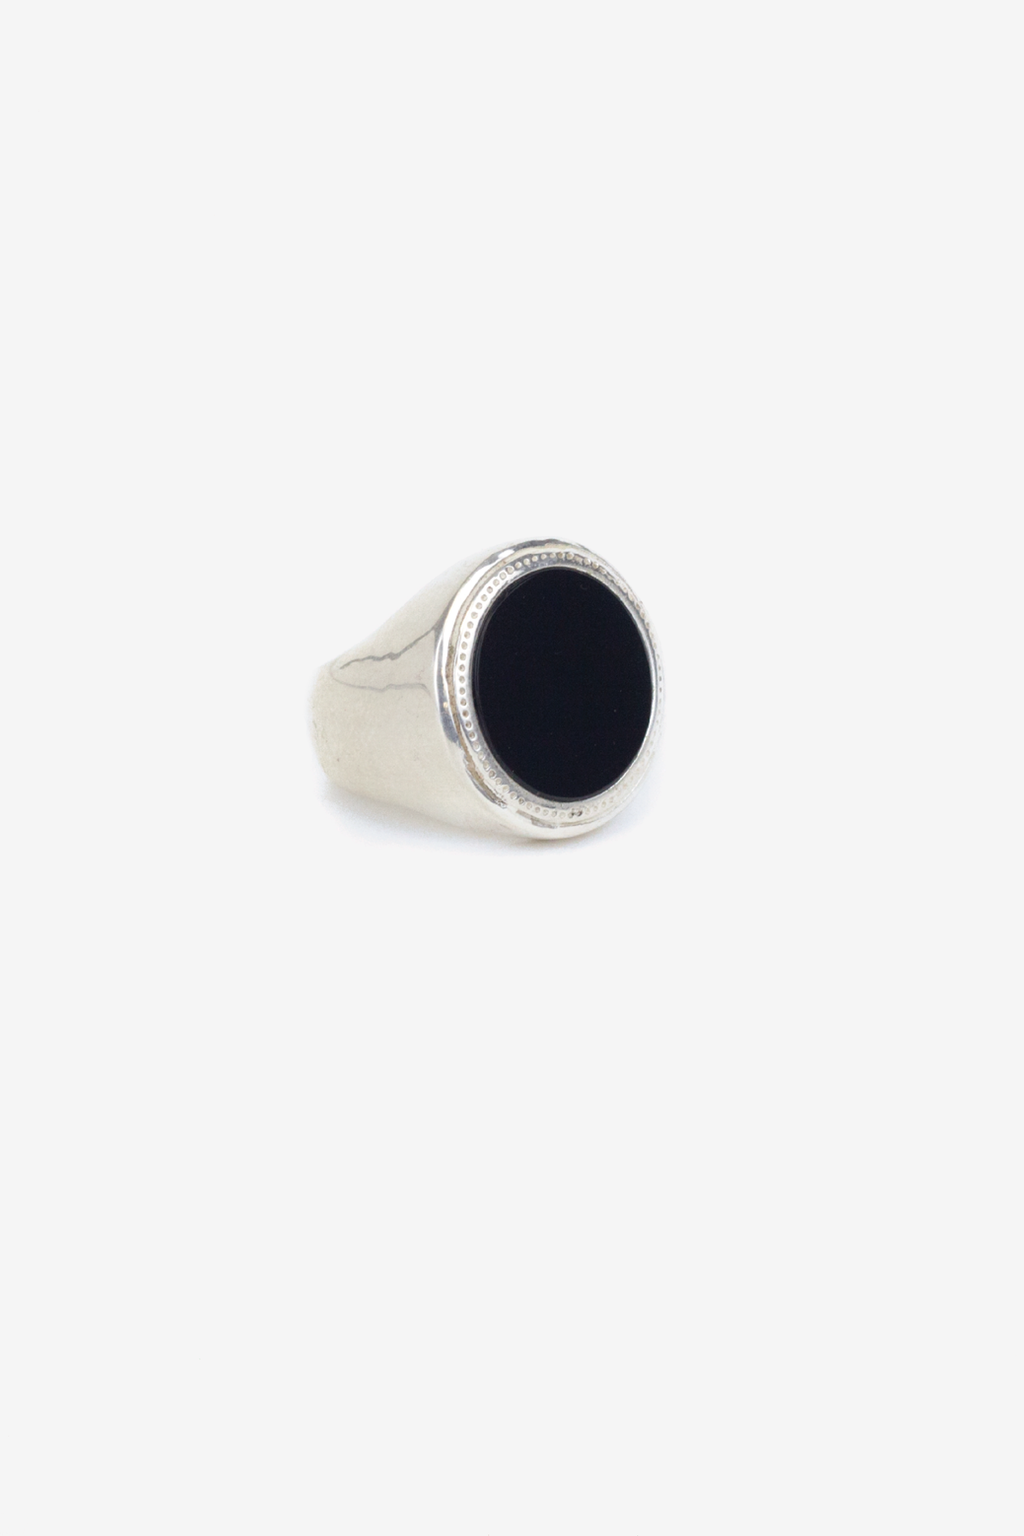 flash - black onyx signet ring - silver